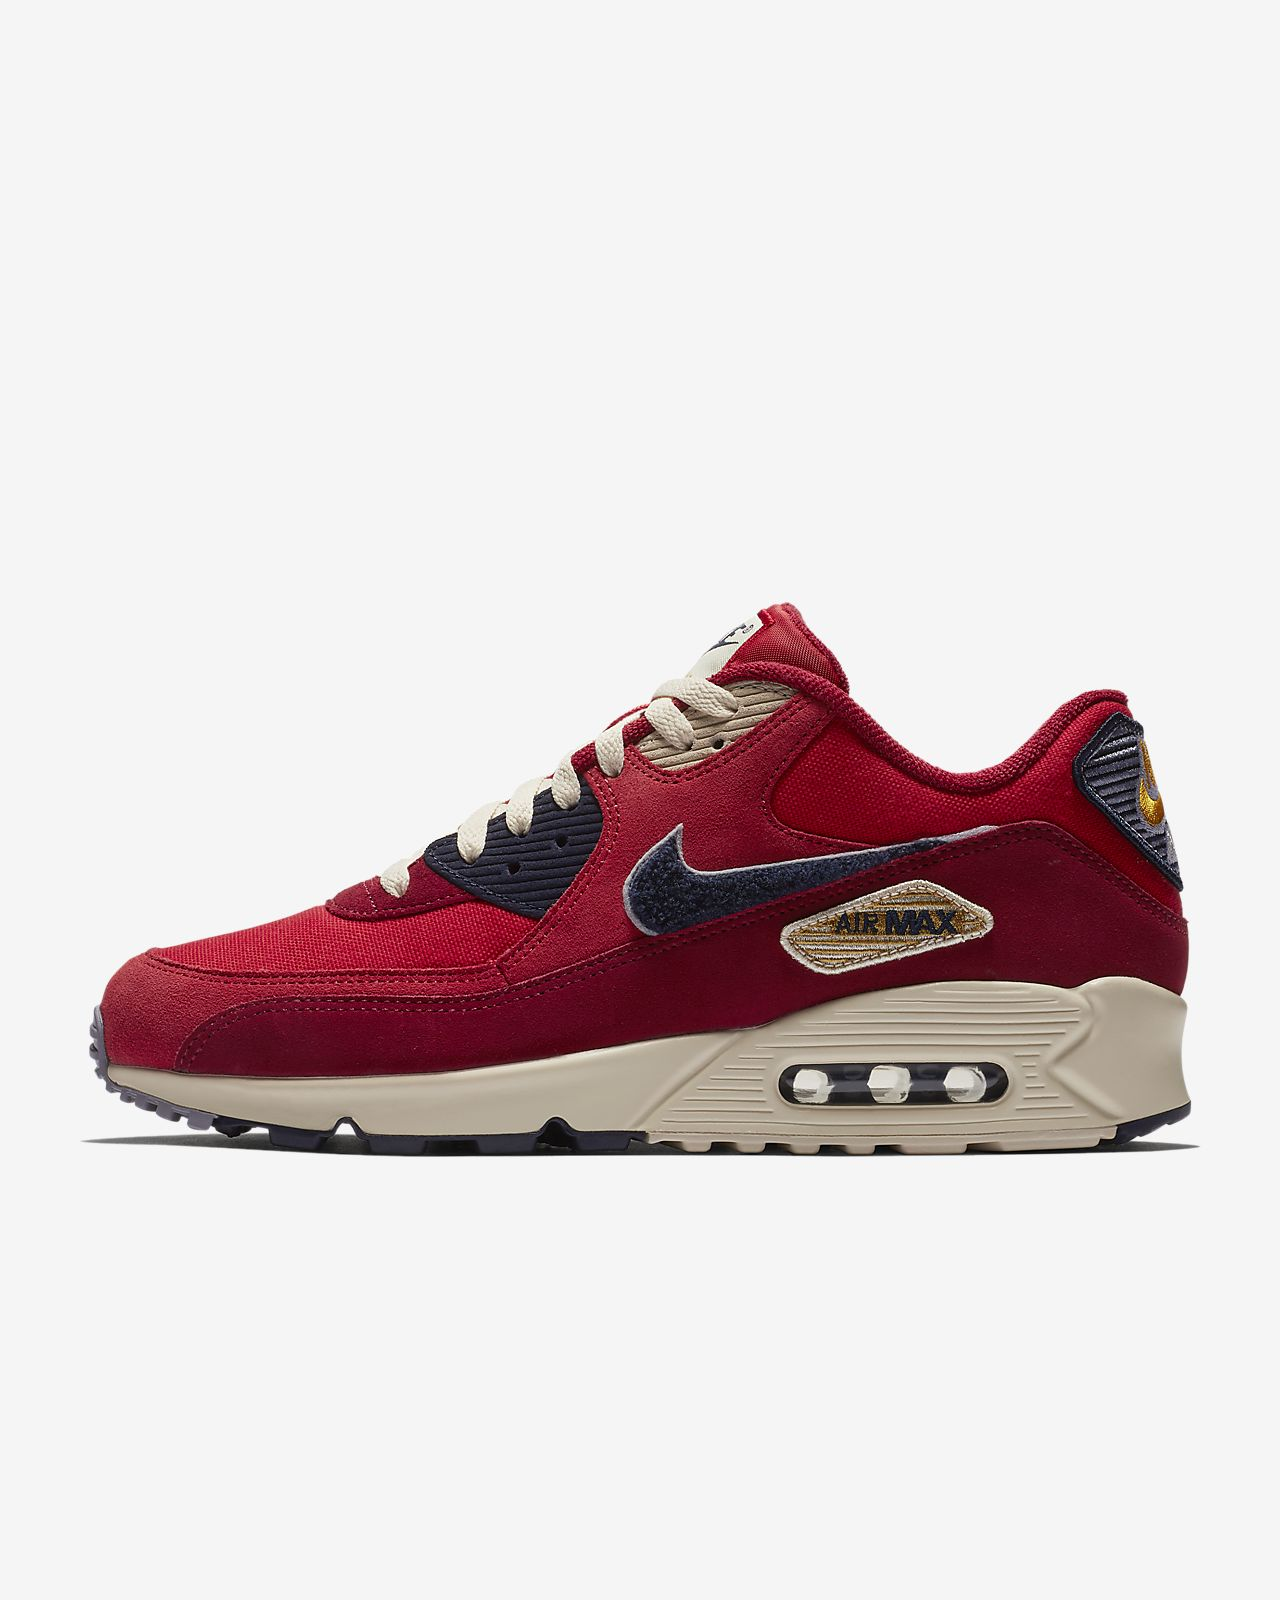 nike air max 90 men's shoe on sale nz